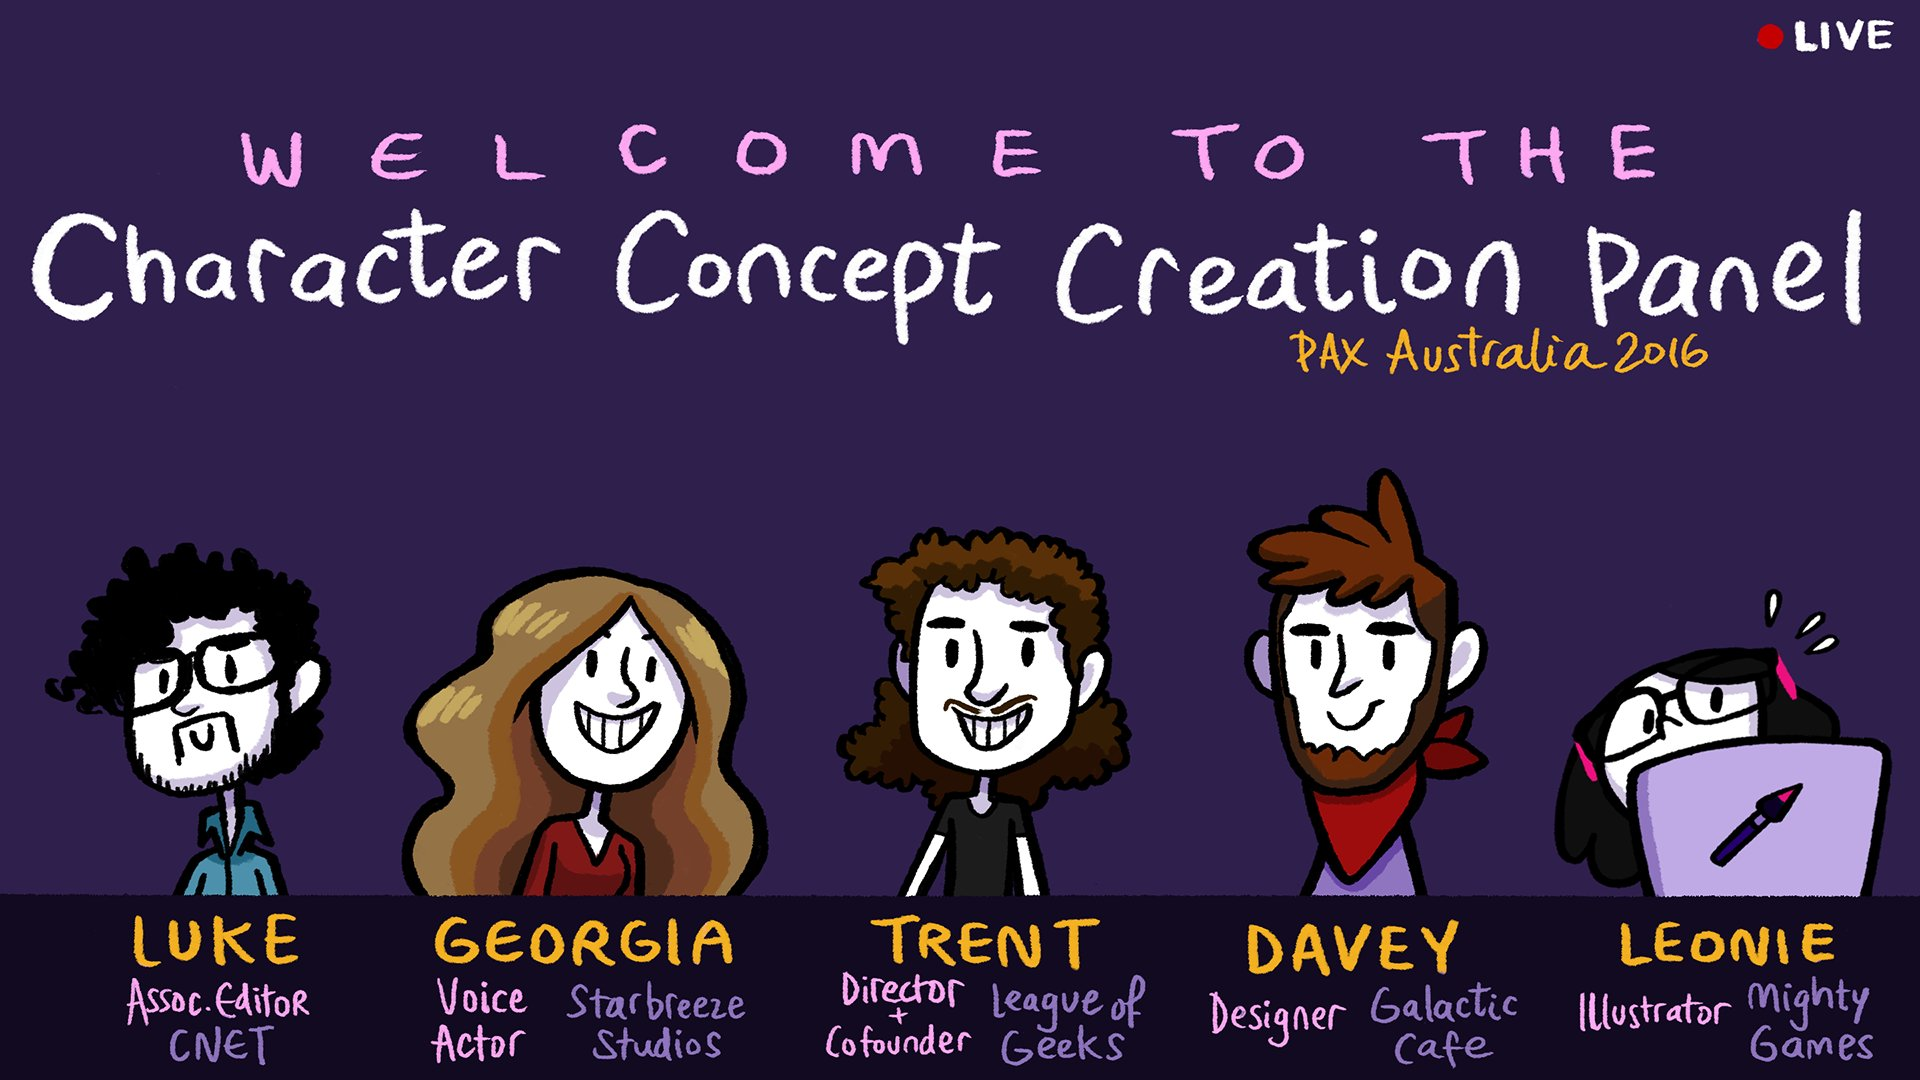 Character Concept Creation Panel @PAXAus Sunday! Take 2! @LGLancaster @GeorgiaVanC @TrentKusters @HelloCakebread https://t.co/dpuFYBHeZB https://t.co/jn4VBp2gCo